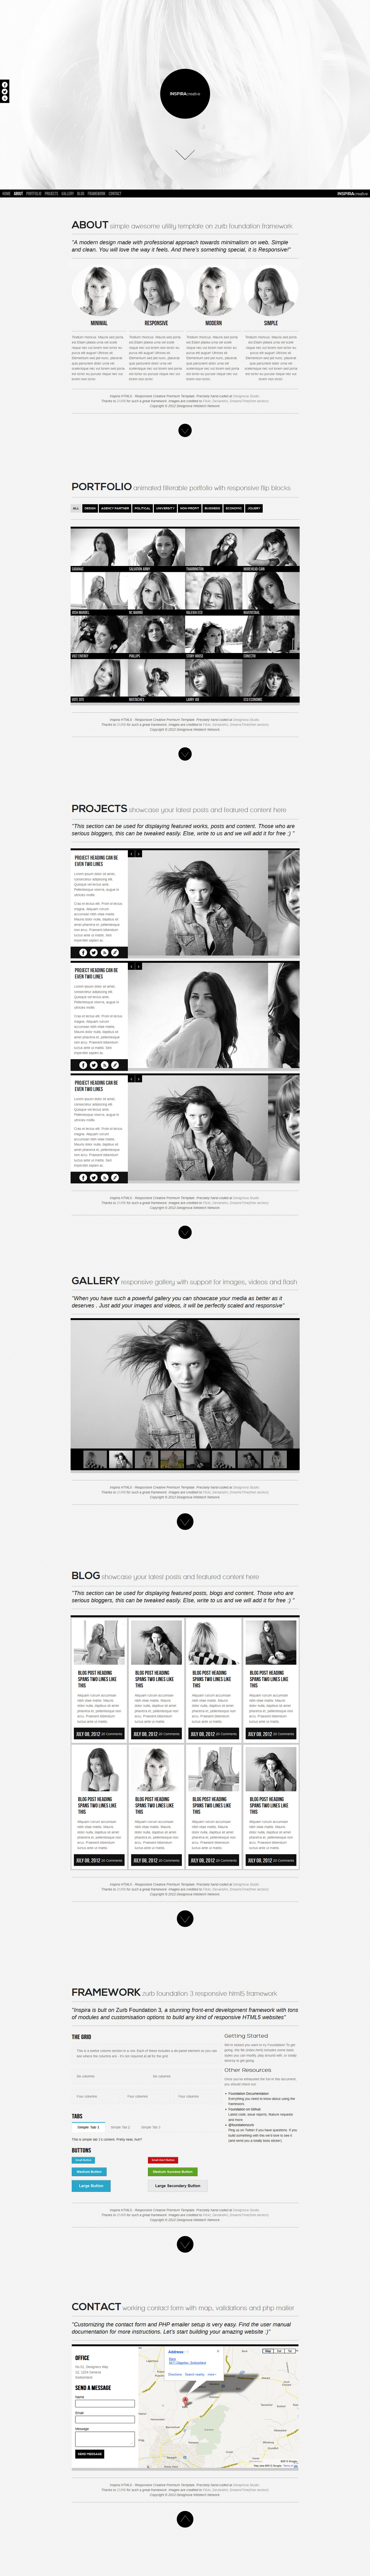 Our latest premium HTML5 template, INSPIRA. Now available